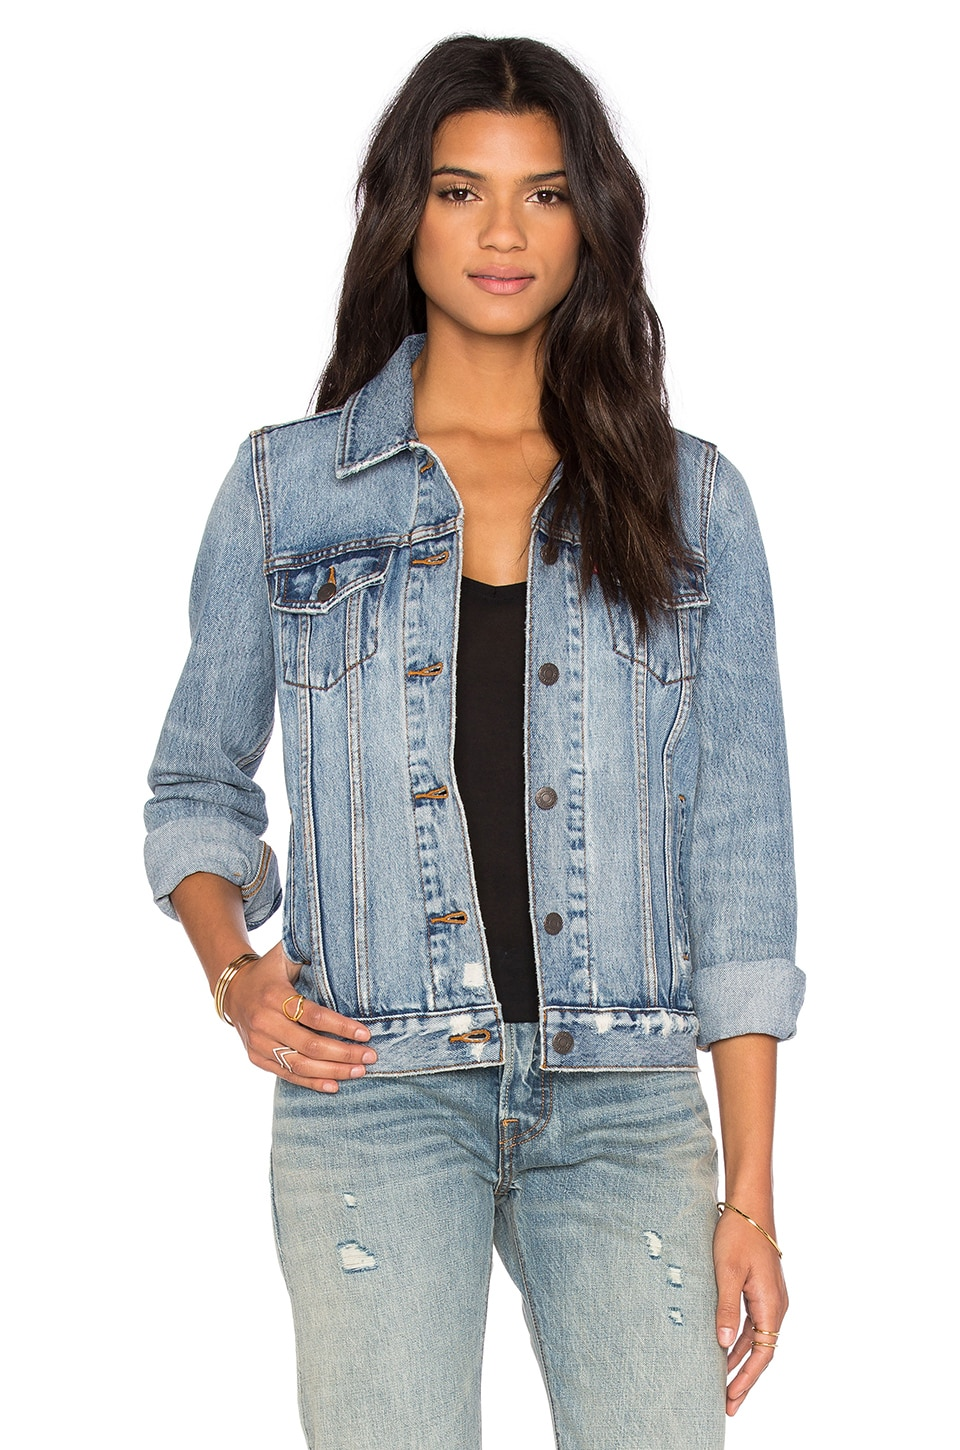 LEVI'S Boyfriend Trucker Jacket in Blue Wonder